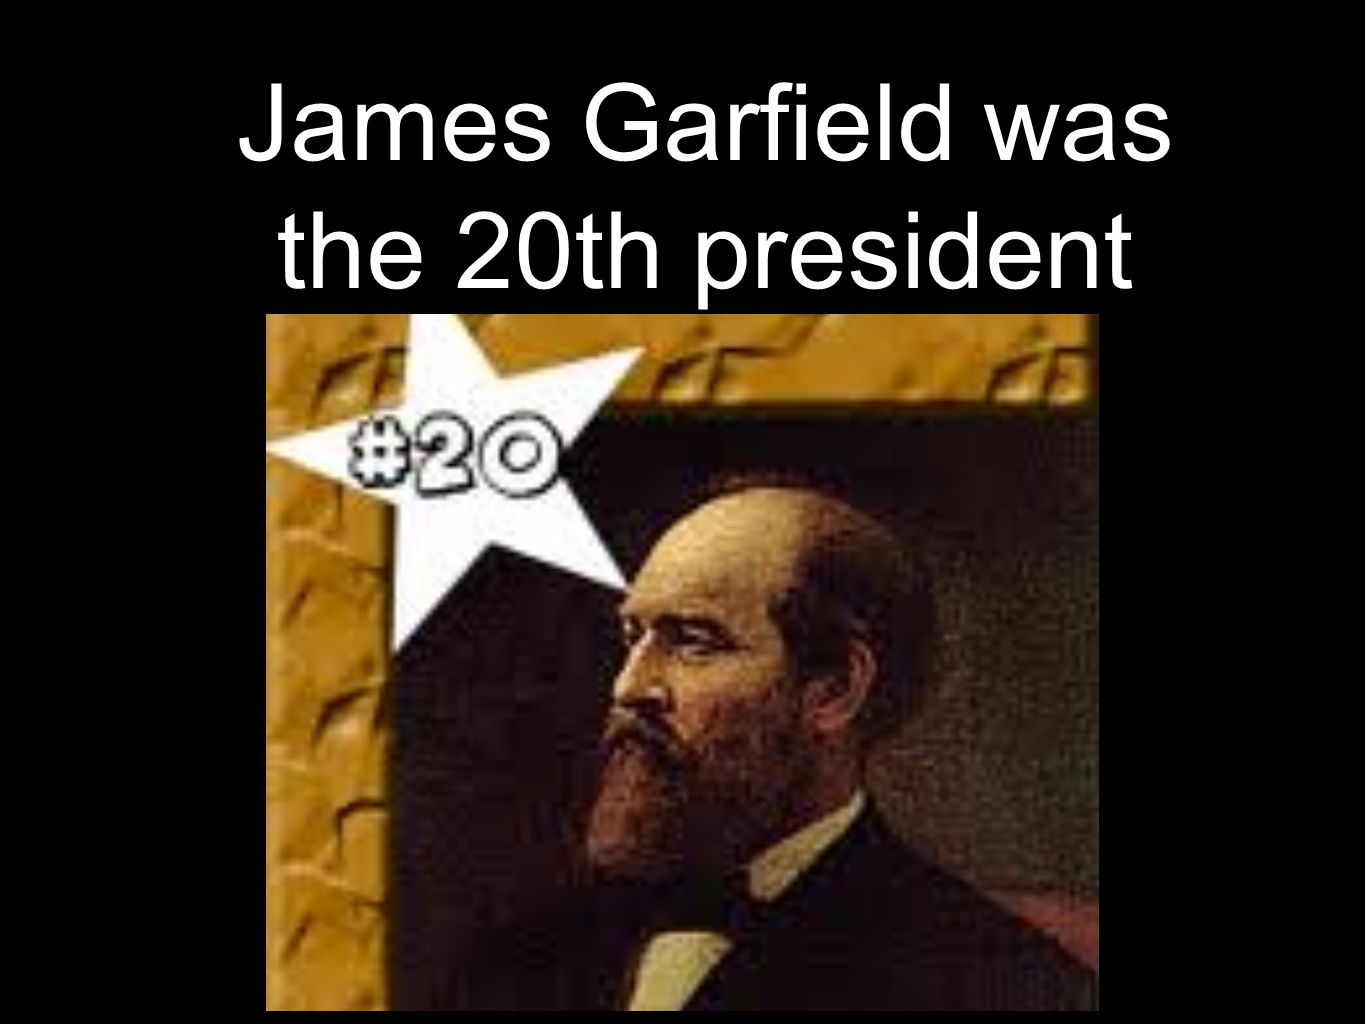 James Garfield was the 20th president